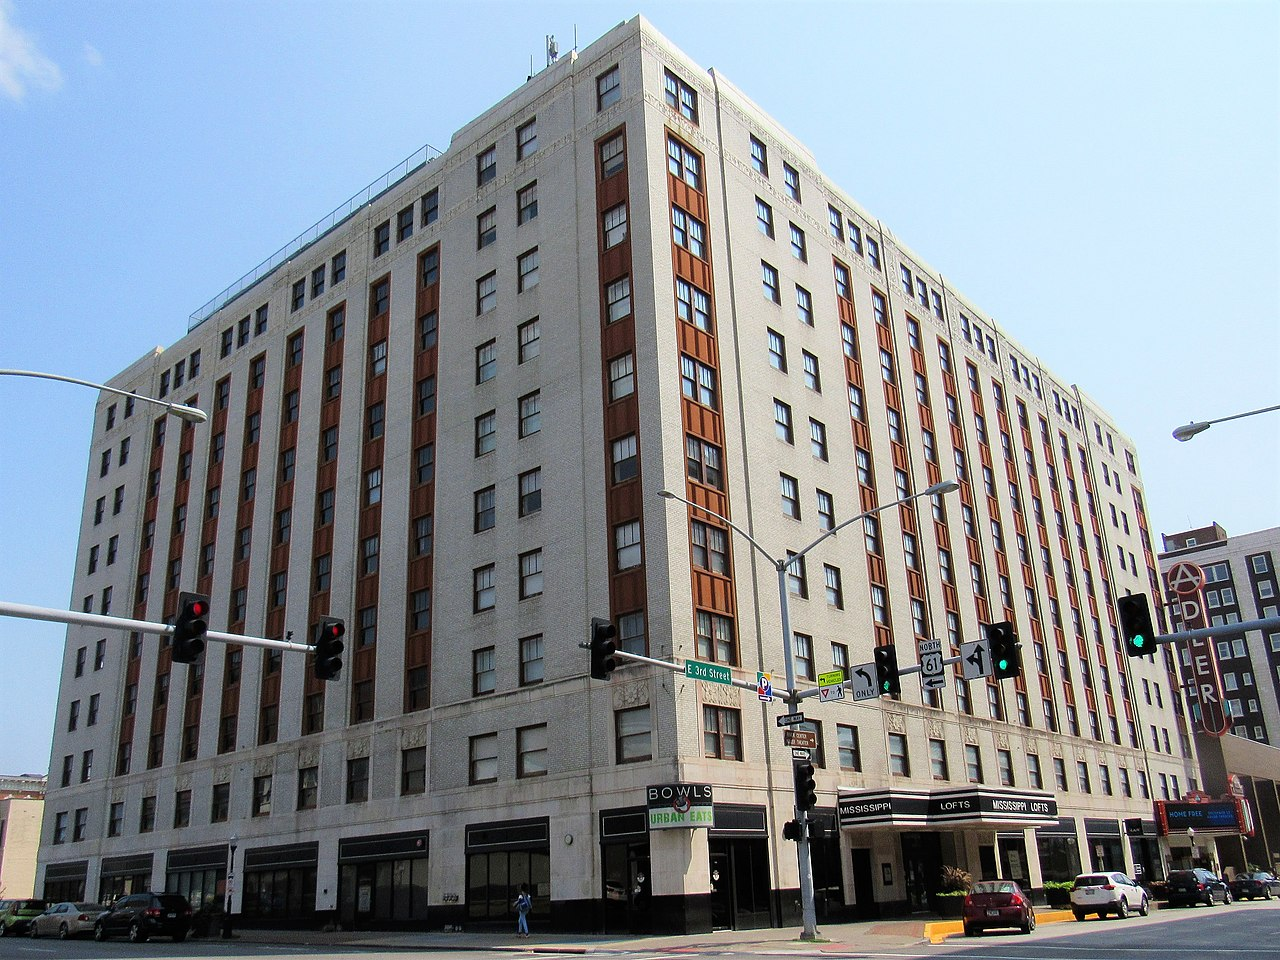 The Mississippi Lofts and Adler Theatre building was constructed in 1931.